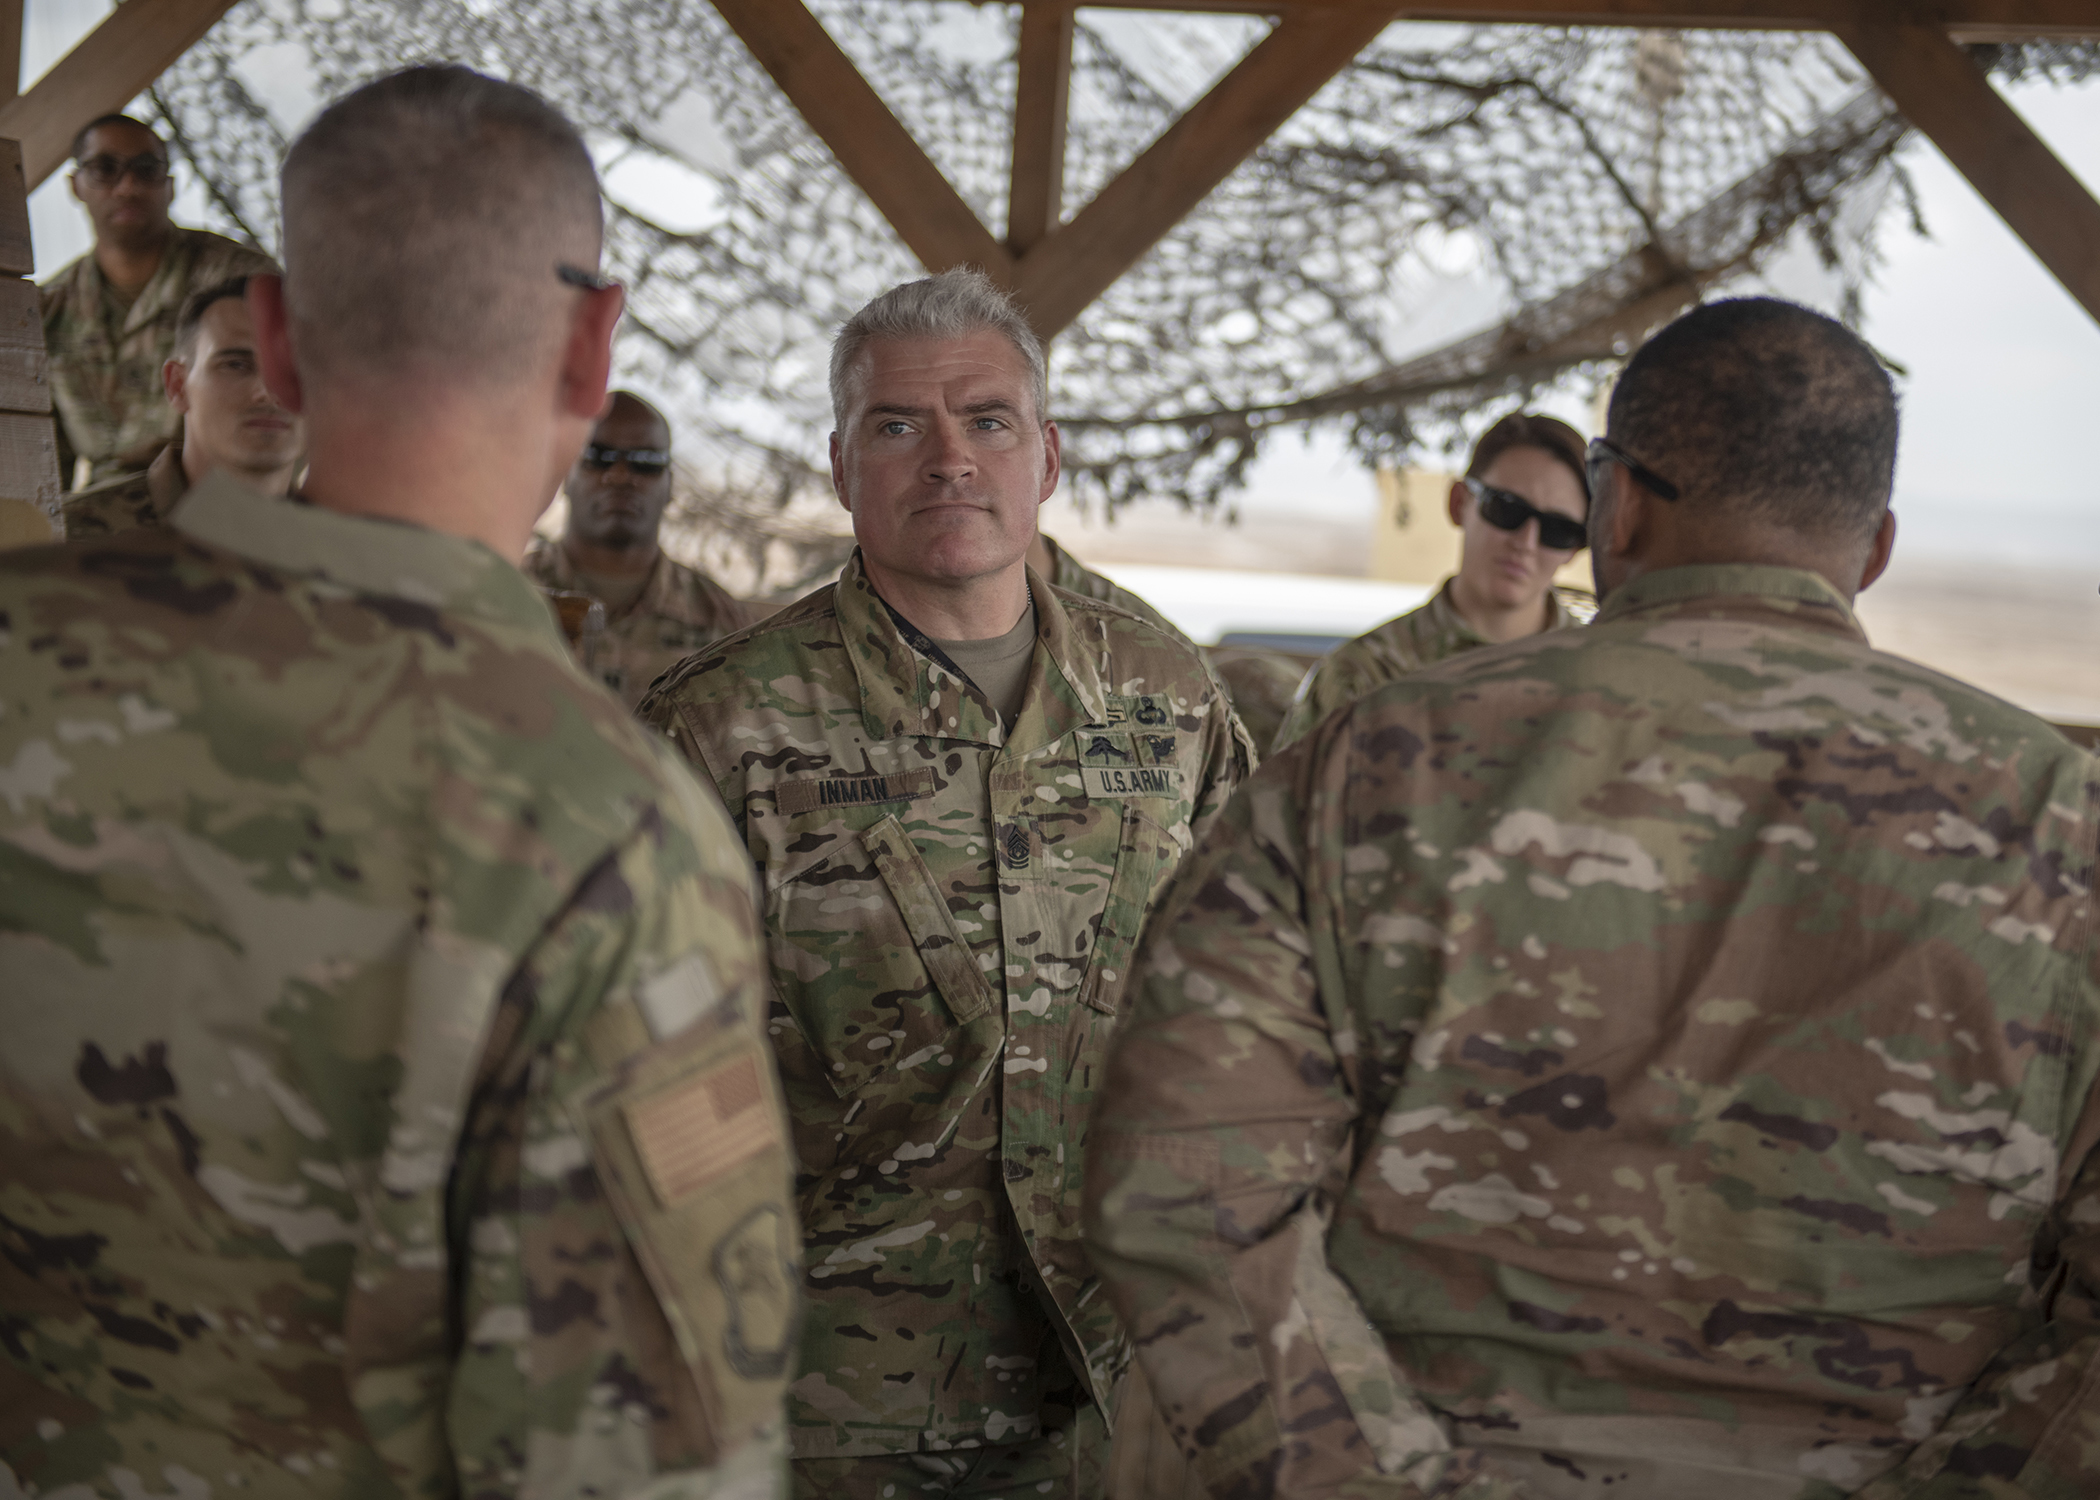 U.S. Army Command Sgt. Maj. Jeremiah E. Inman, command sergeant major of U.S. Army Africa (USARAF), meets with Soldiers assigned to Combined Joint Task Force-Horn of Africa (CJTF-HOA), during Inman's visit to a forward operating location in East Africa, March 12, 2019. Inman visited to familiarize himself with the U.S. Army units embedded in CJTF-HOA and to help foster a better partnership between USARAF and CJTF-HOA. (U.S. Air Force photo by Tech. Sgt. Shawn Nickel)